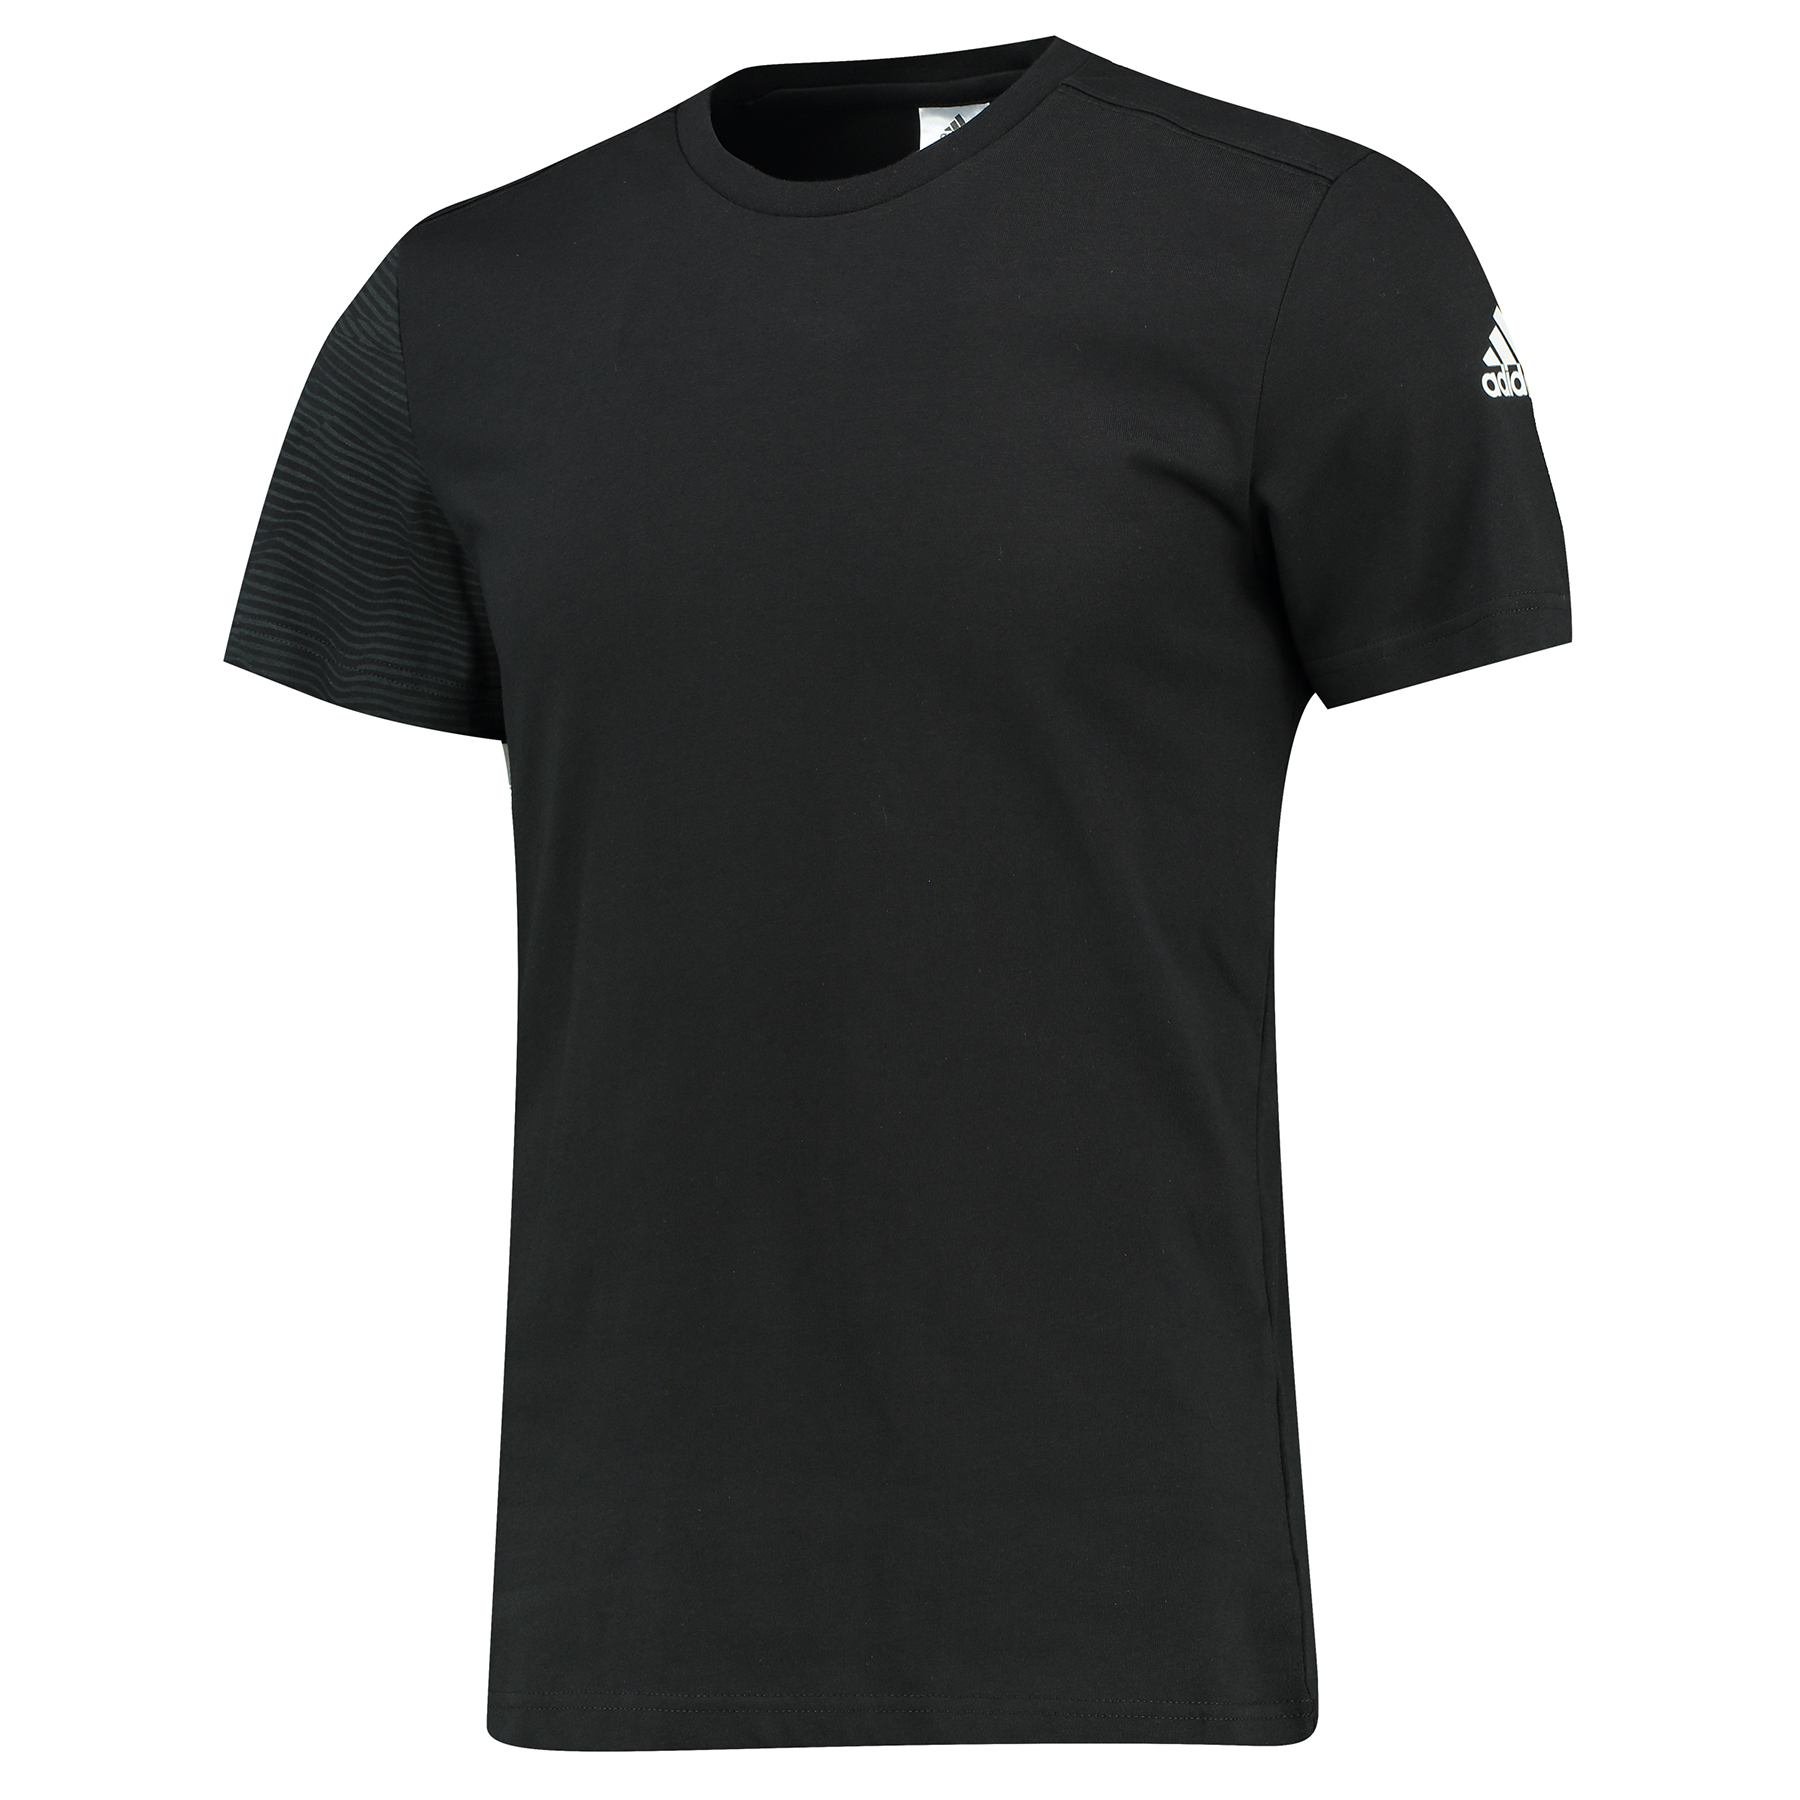 Adidas Graphic TShirt Black